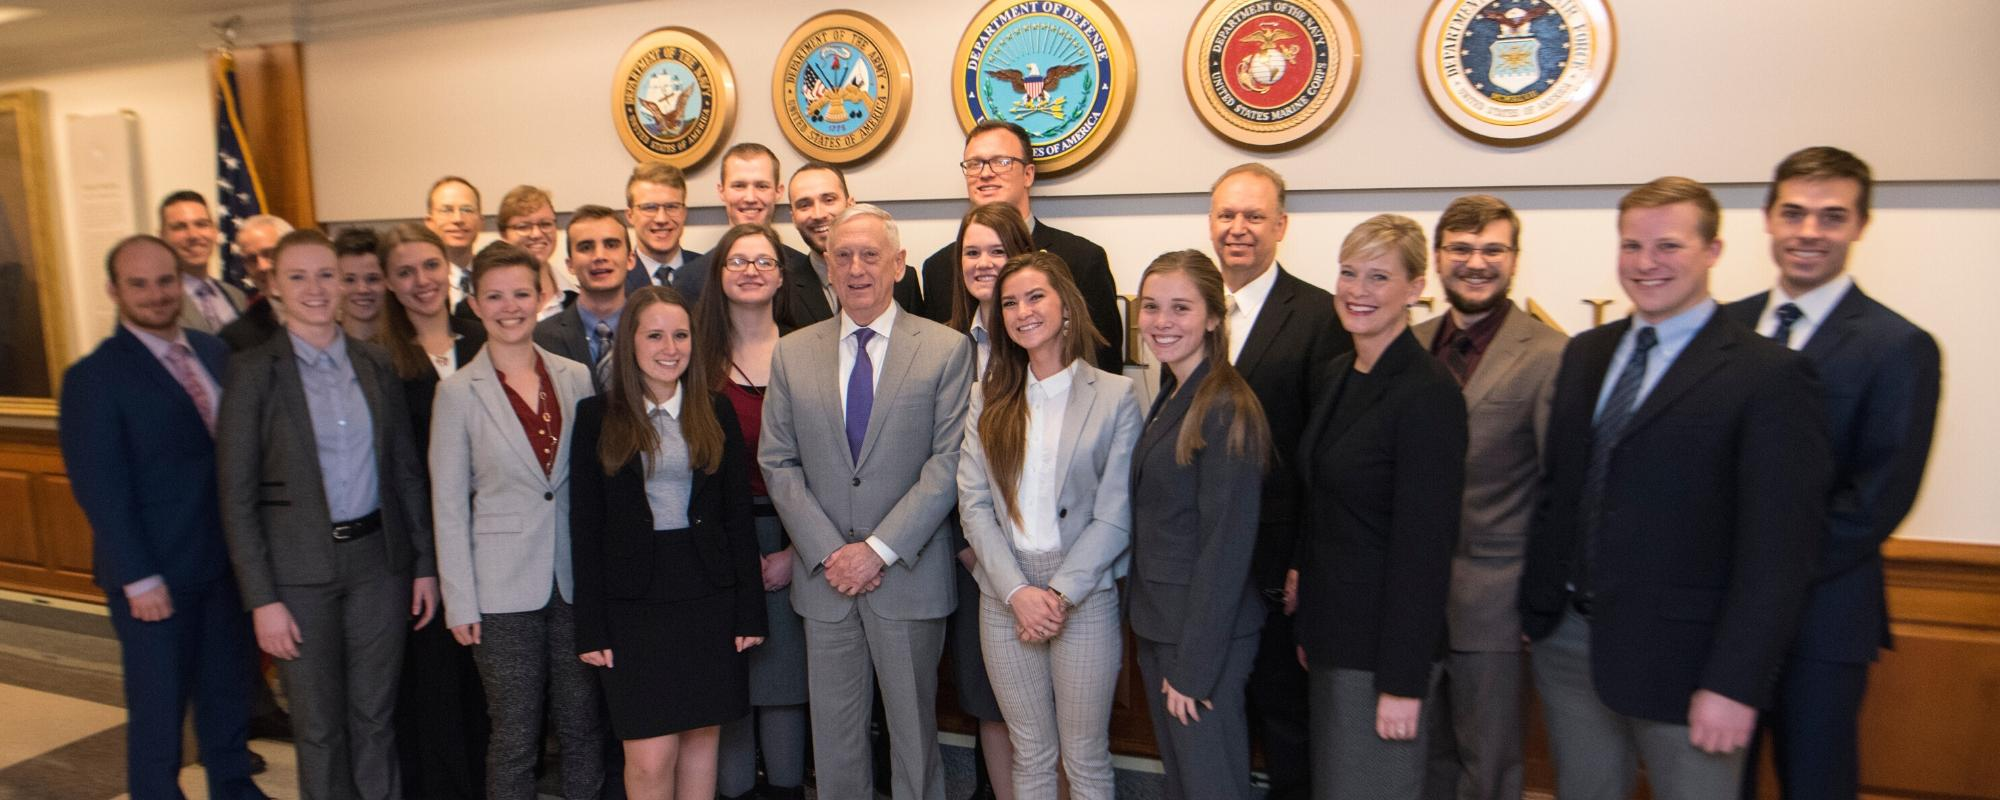 CAI students meet with former Secretary of Defense Jim Mattis in the Pentagon.